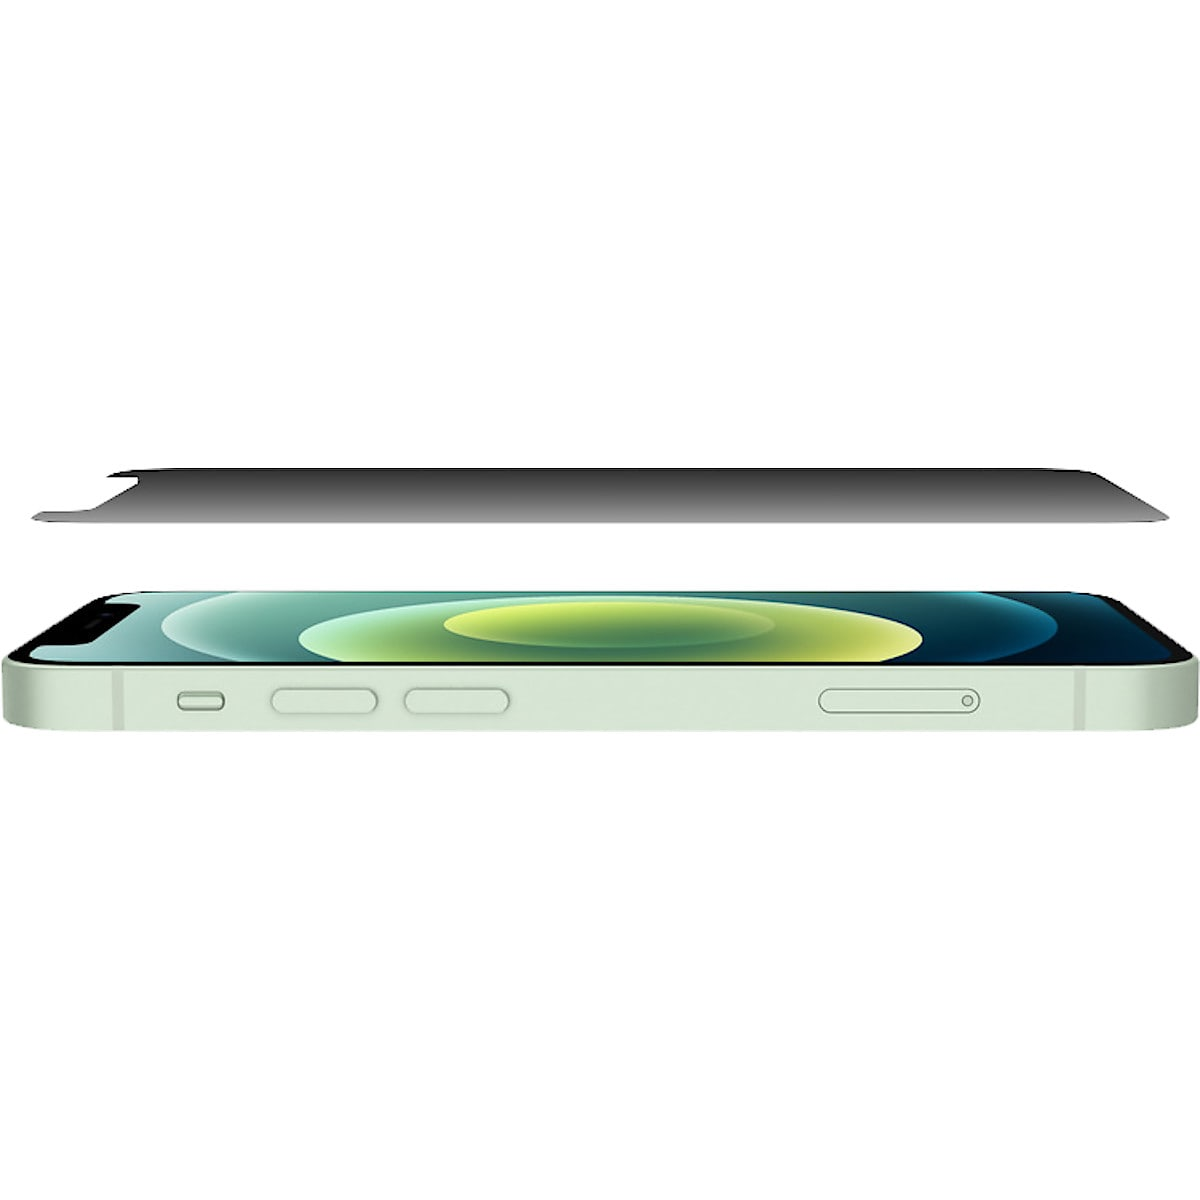 Belkin Tempered Glass Privacy Anti-Microbial, skjermbeskytter for iPhone 12 mini